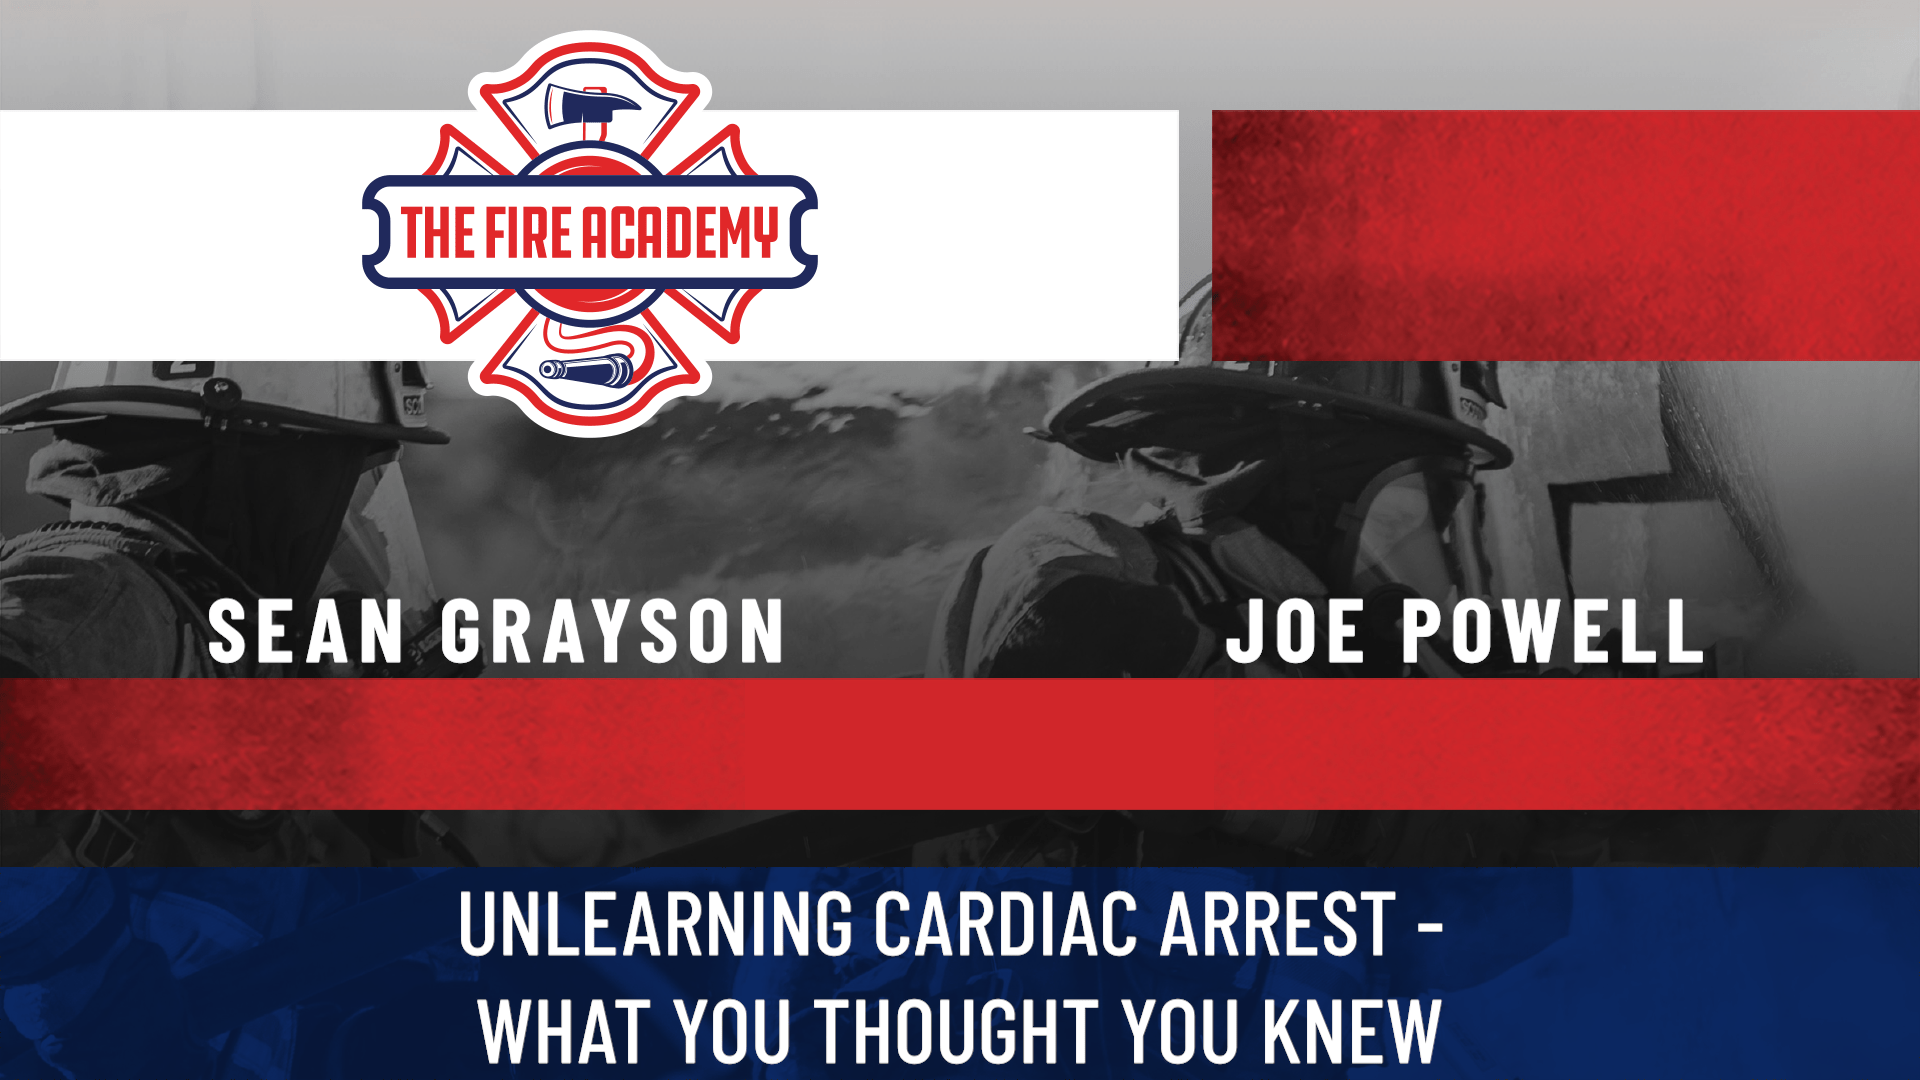 Unlearning Cardiac Arrest – What You Thought You Knew